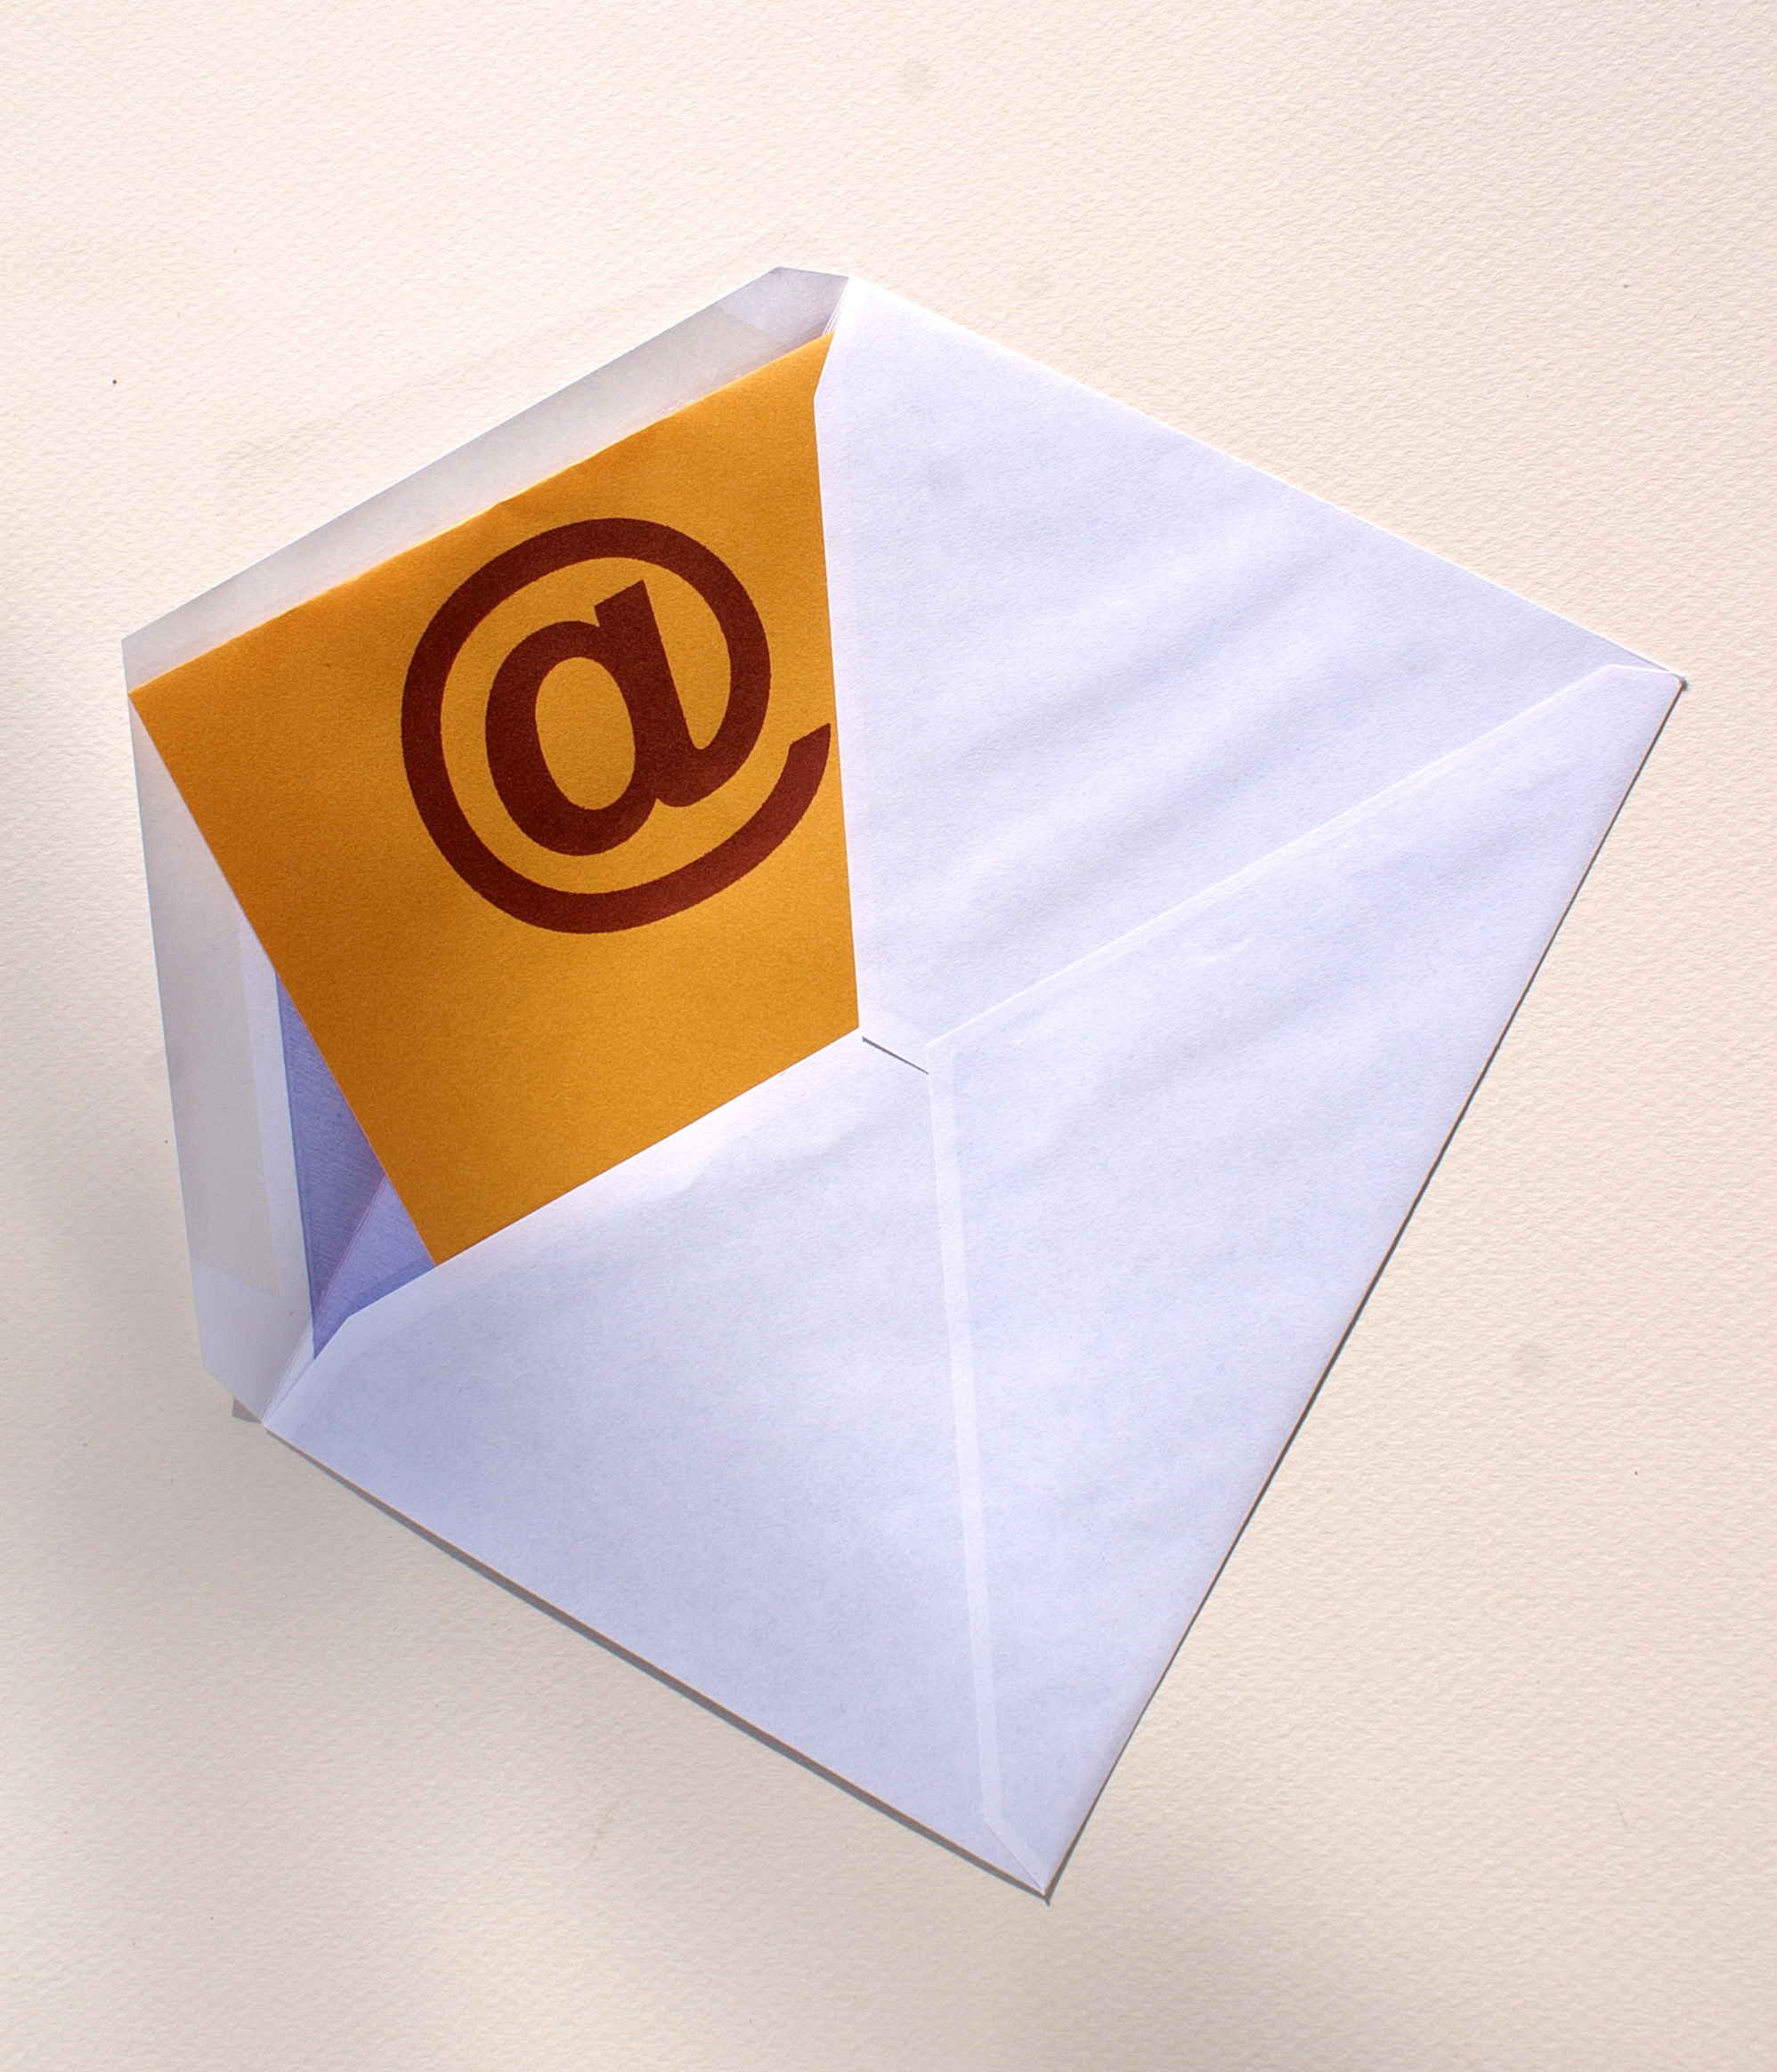 10 proven ways to grow your email subscriber list